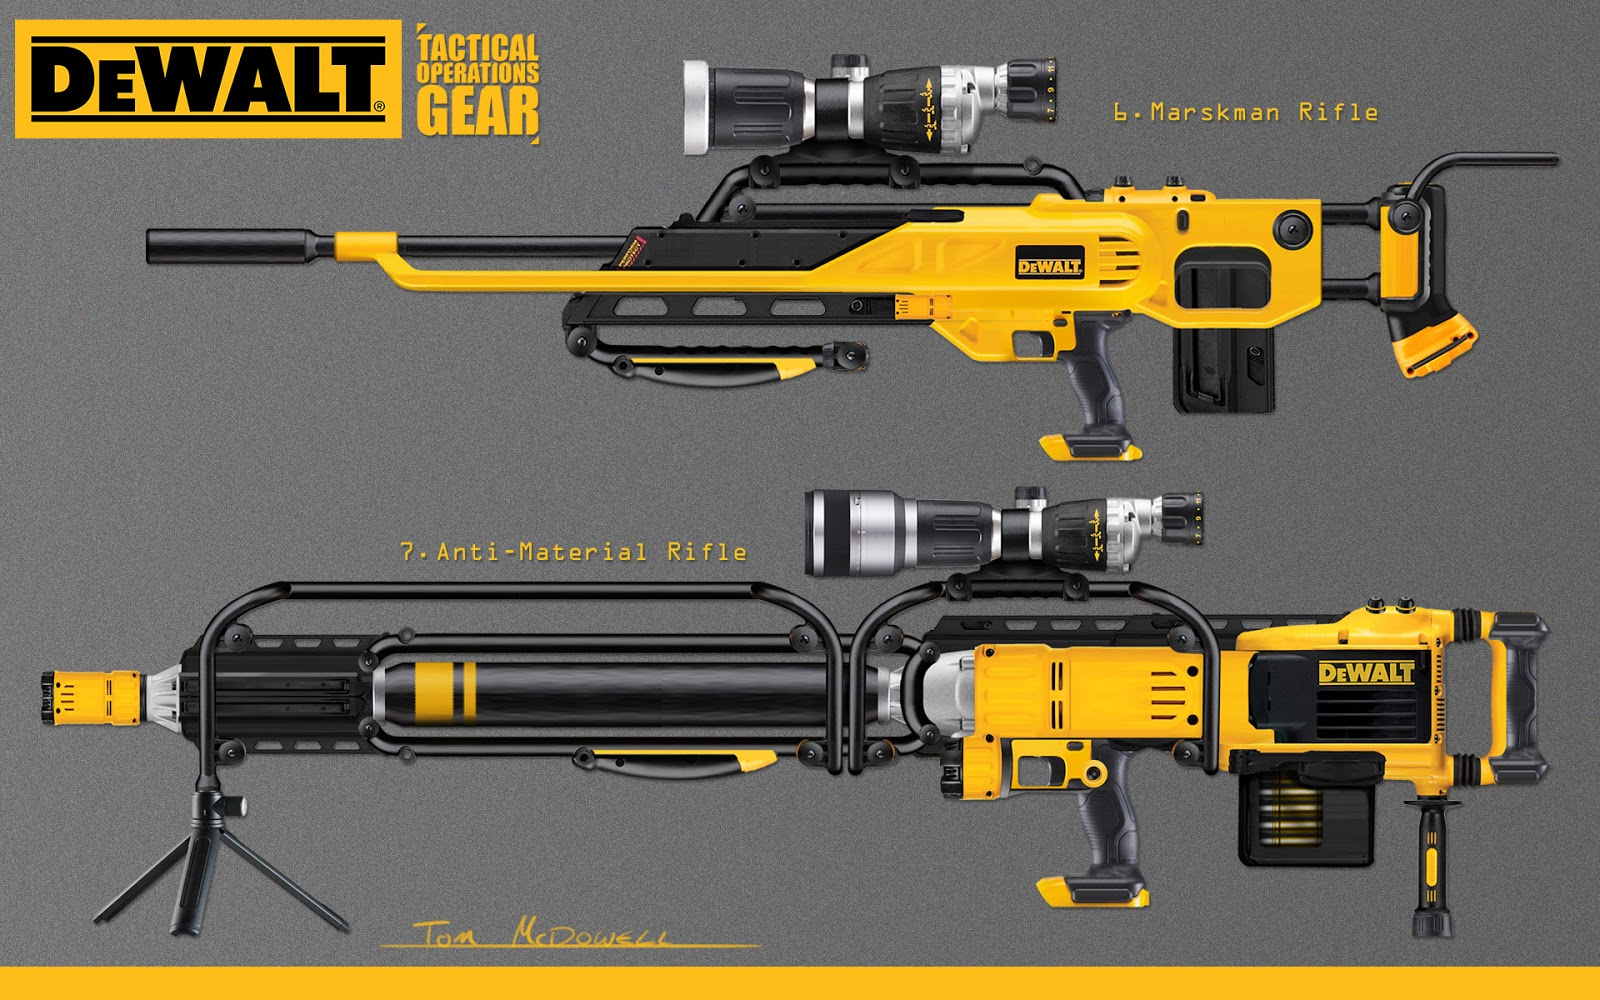 Tom McDowell: Dewalt Guns